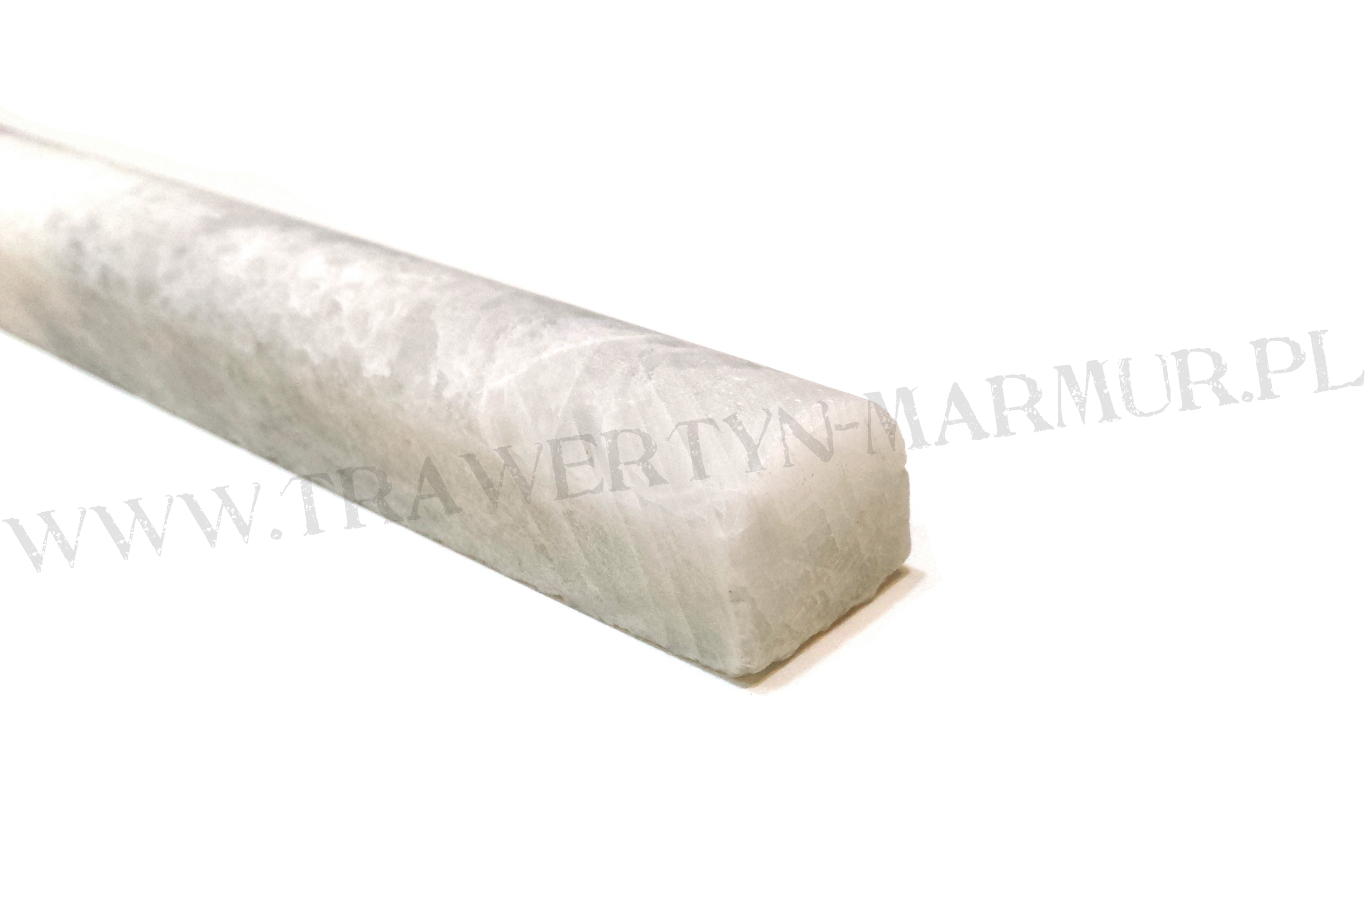 Dekor marmurowy Bianco Carrara Pencil 2cm x 30,5cm